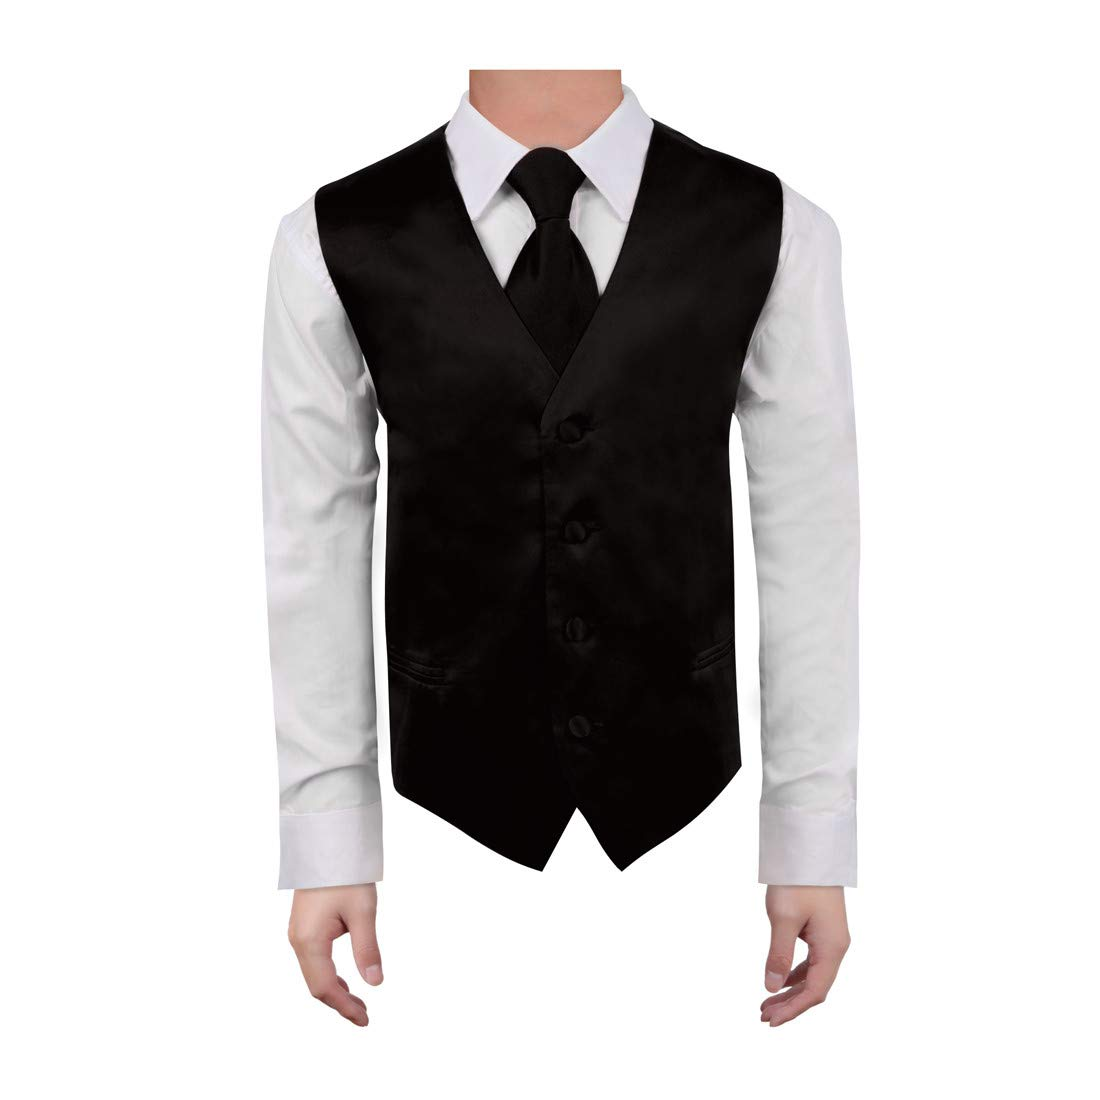 Dan Smith Men's Fashion Various Kid Solid Microfiber Vest Matching Tie for Age 6-16 With Free Gift Bags